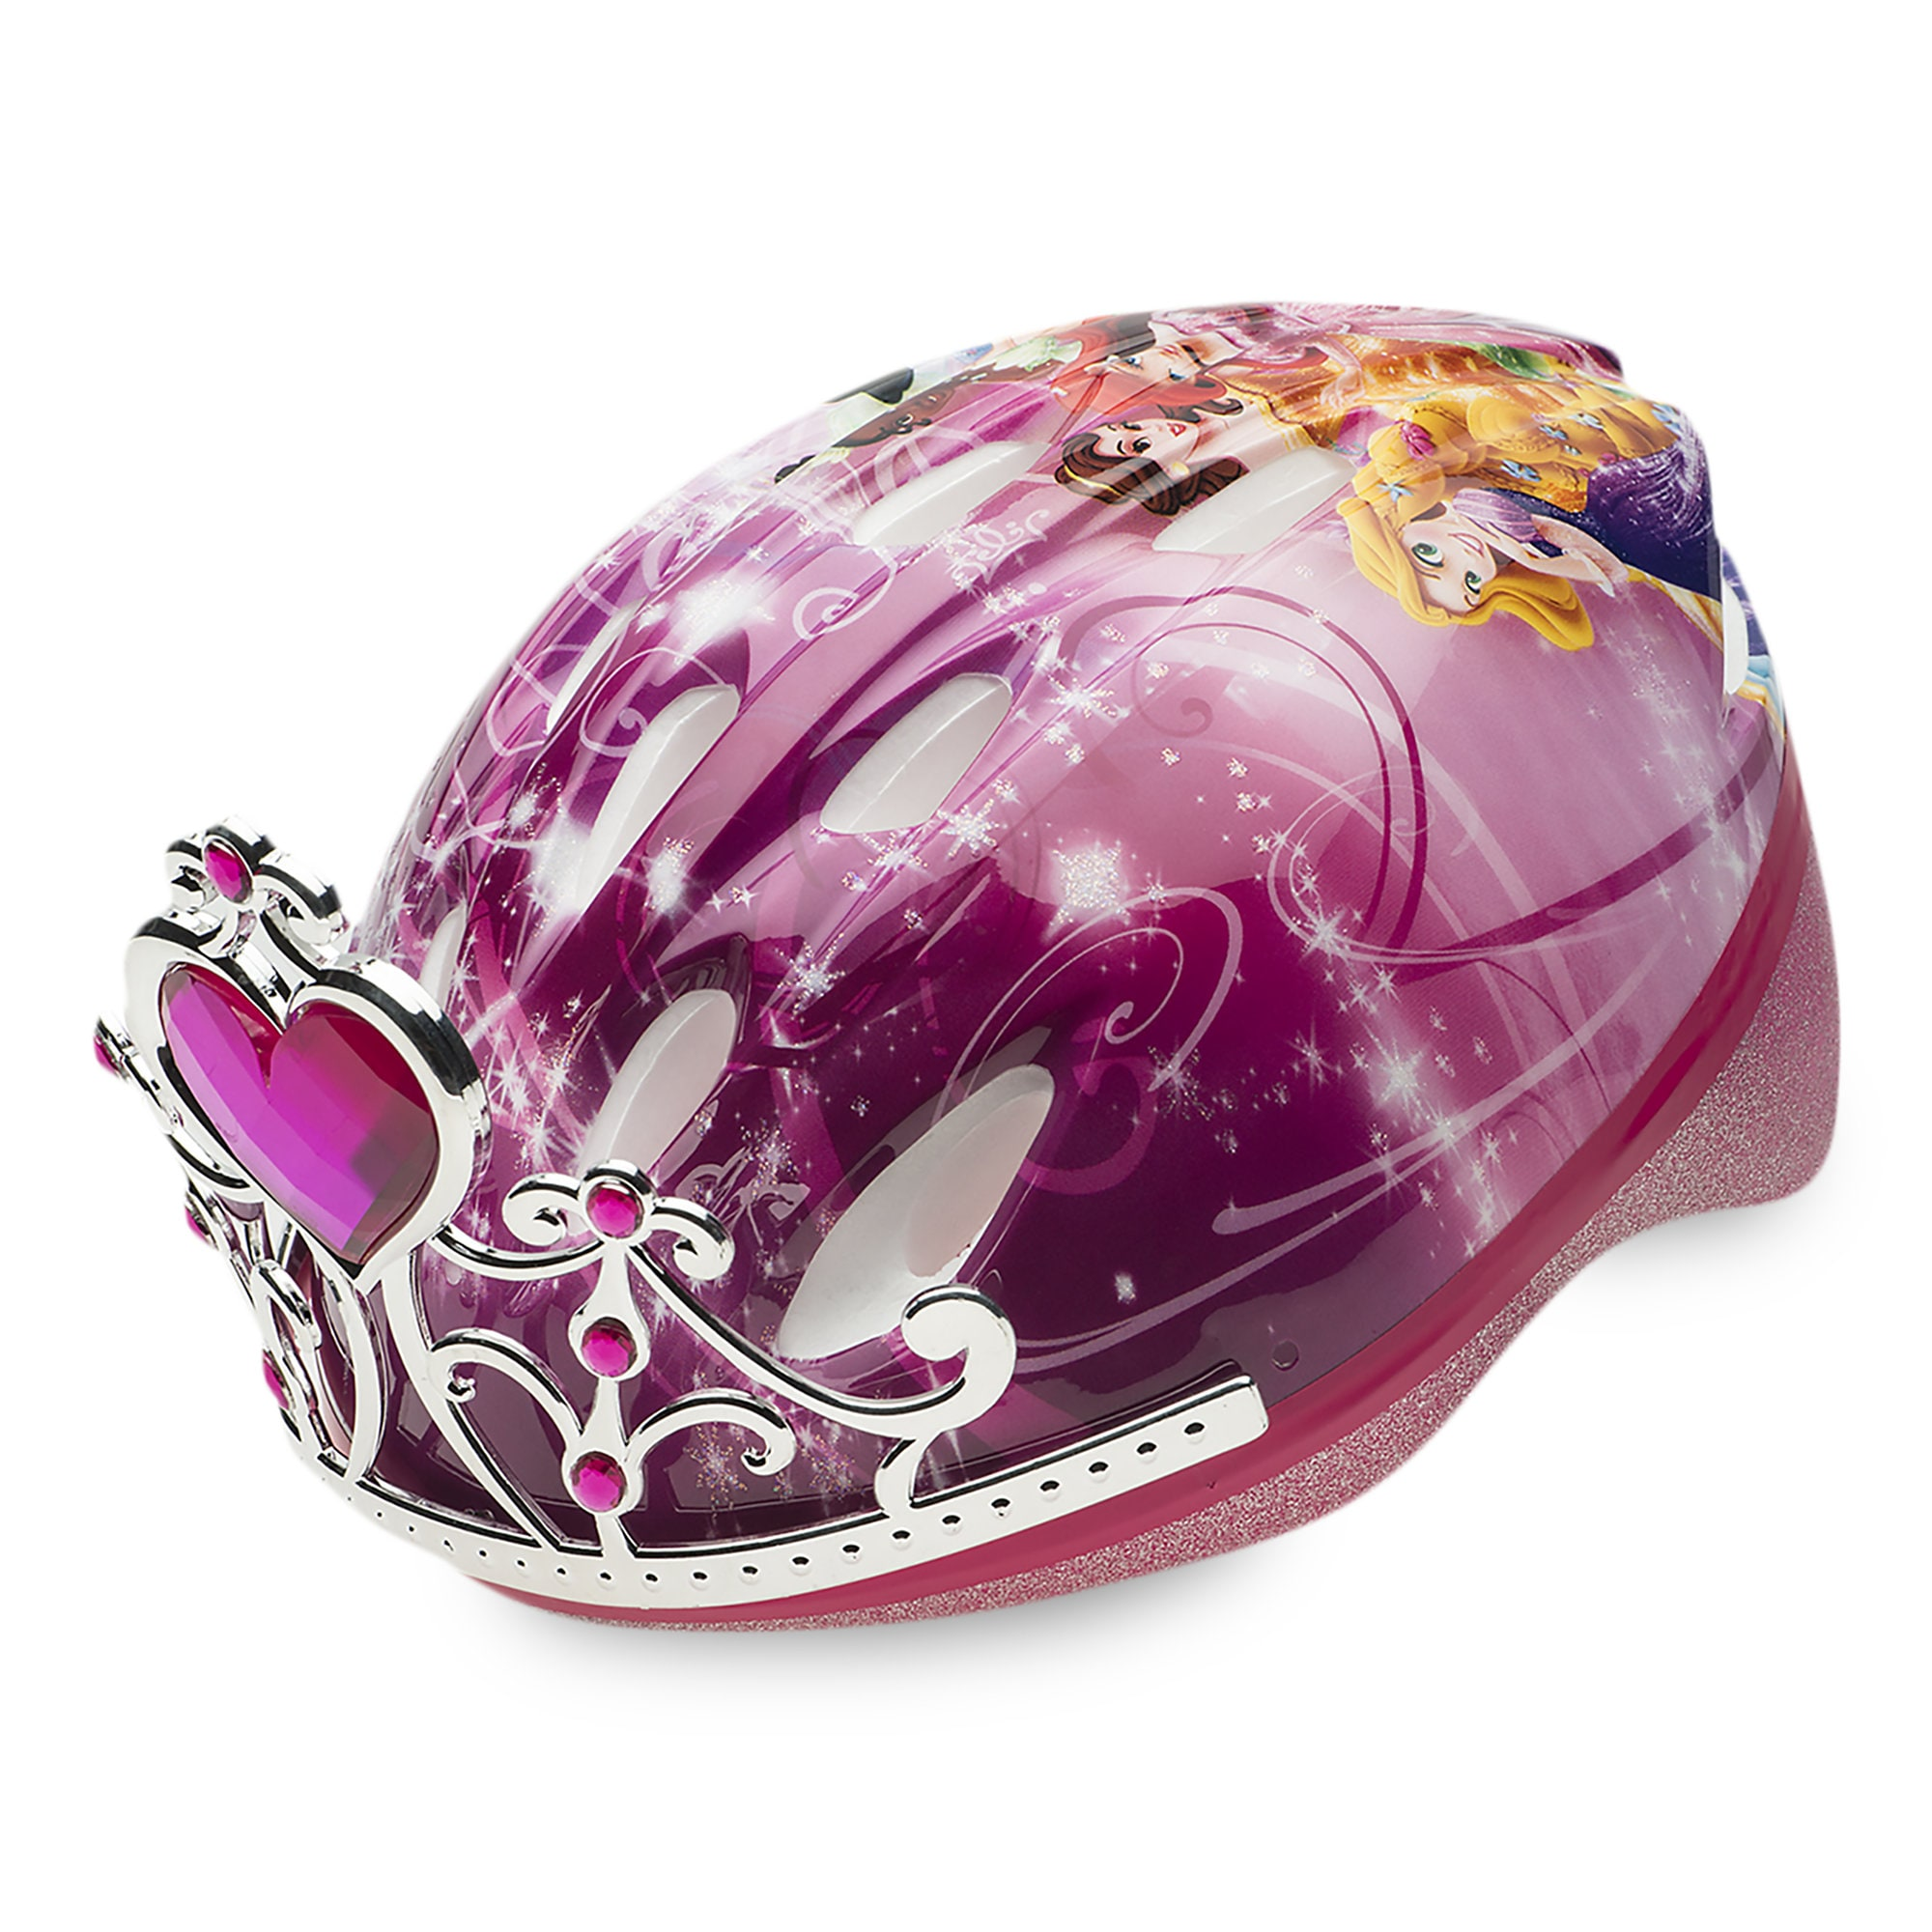 Disney Princess Bike Helmet for Kids